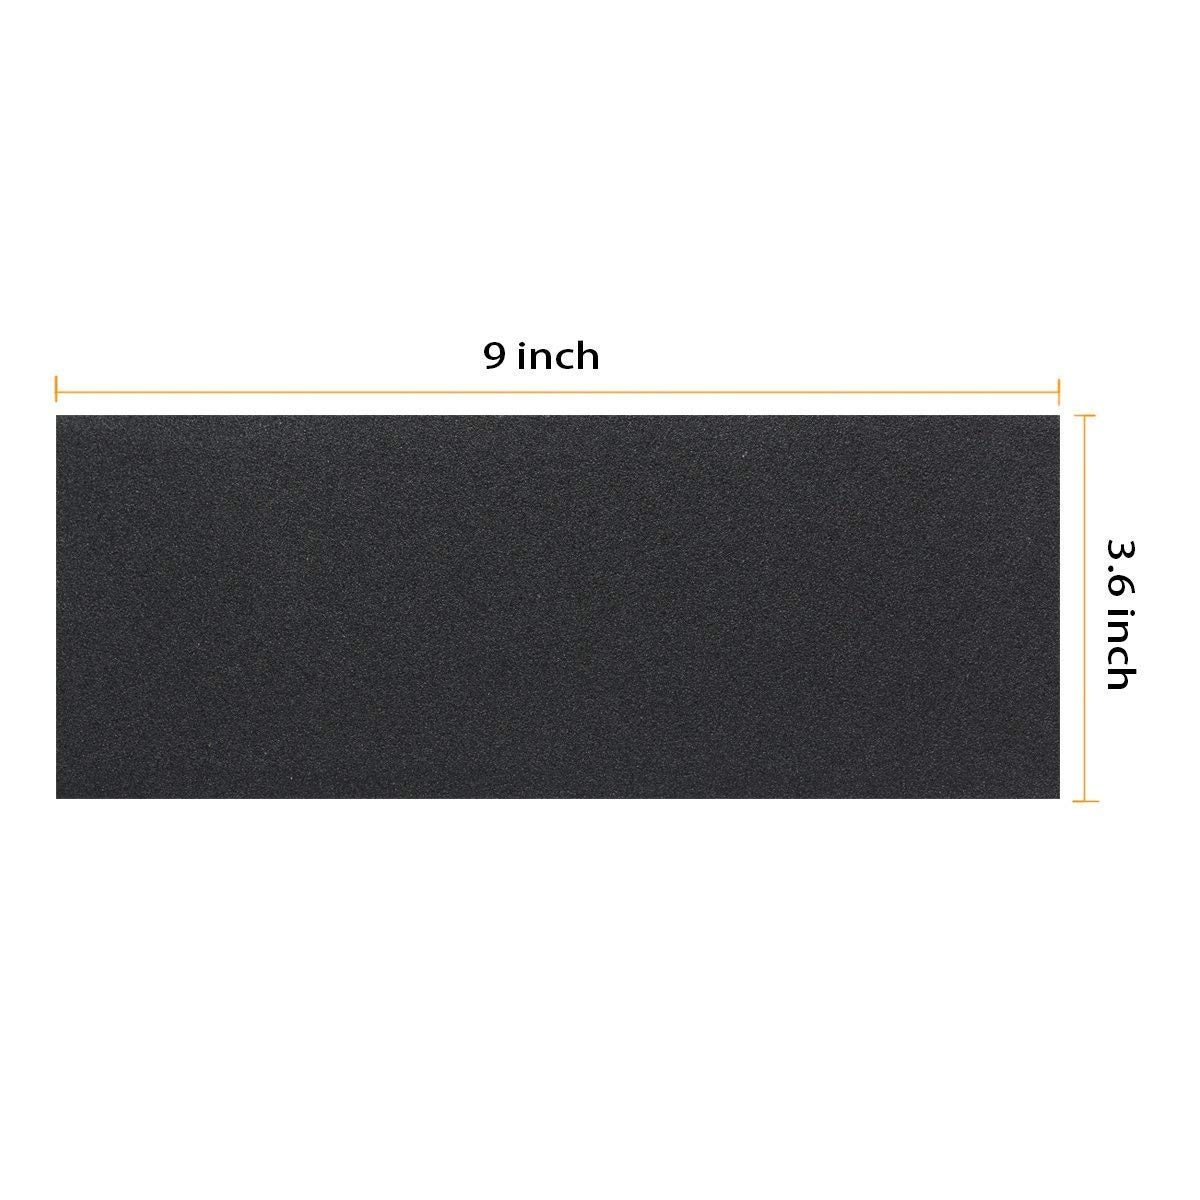 Sandpaper 120 To 3000 Grit Dry Wet Sandpaper for wood 9 x 3.6 Inches, Metal Sanding and Automotive Polishing Wood Furniture Finishing, Dry or Wet Sanding,42-Sheet